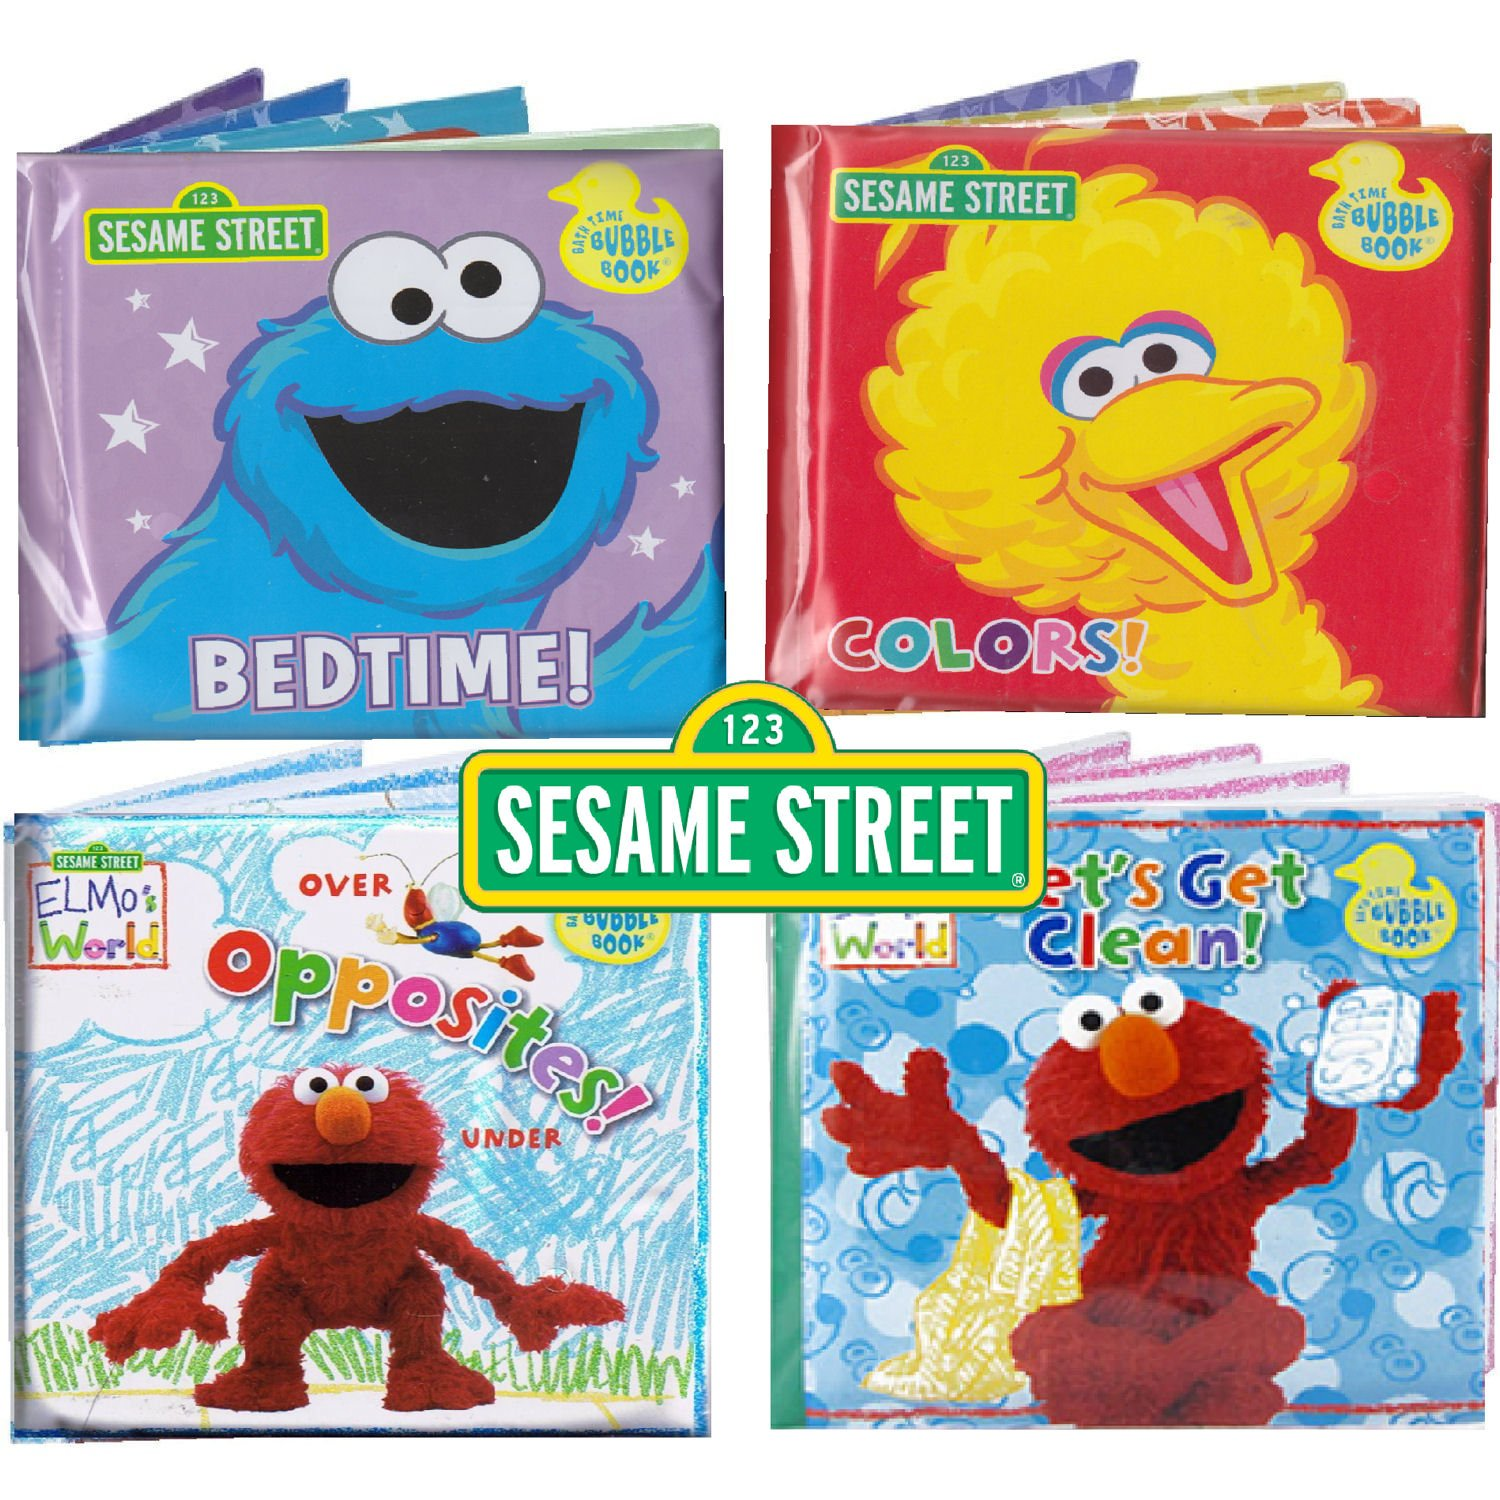 Charmant Amazon.com : Sesame Street® Bath Time Bubble Books Featuring The Elmo,  Grover, Big Bird, And Cookie Monster (Set Of 4) : Bathtub Toys : Baby